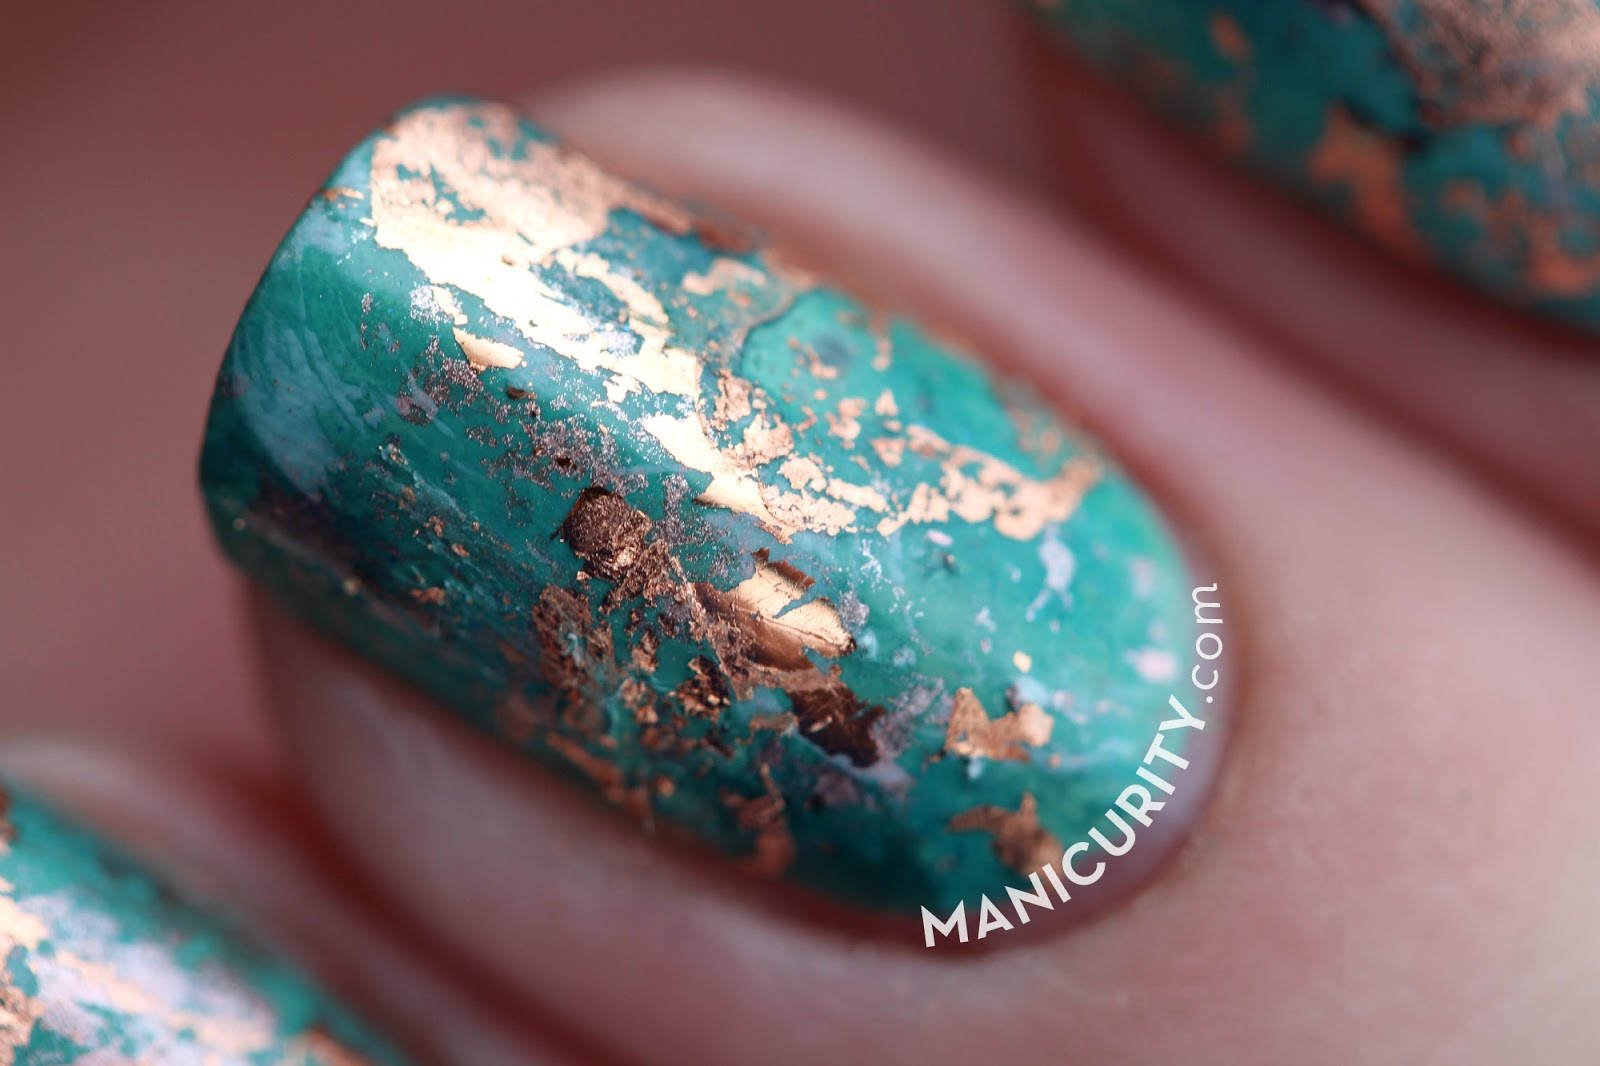 Manicurity the digit al dozen cuprum texture nail art the digit al dozen patina copper nails native cuprum texture nail art with prinsesfo Choice Image